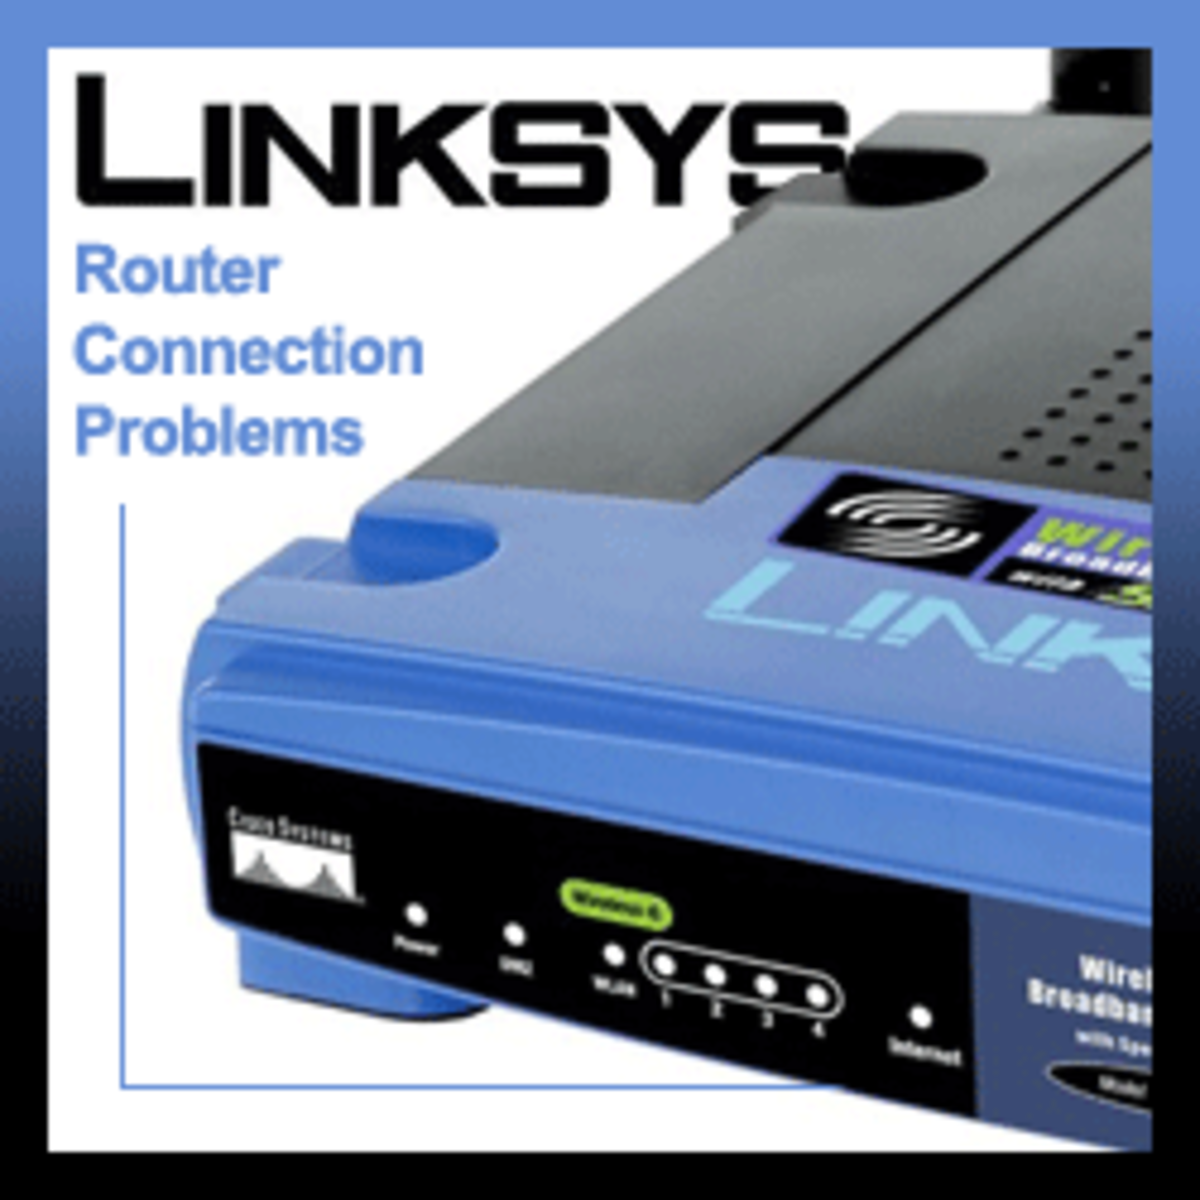 How to Fix Linksys Router Connection Problems